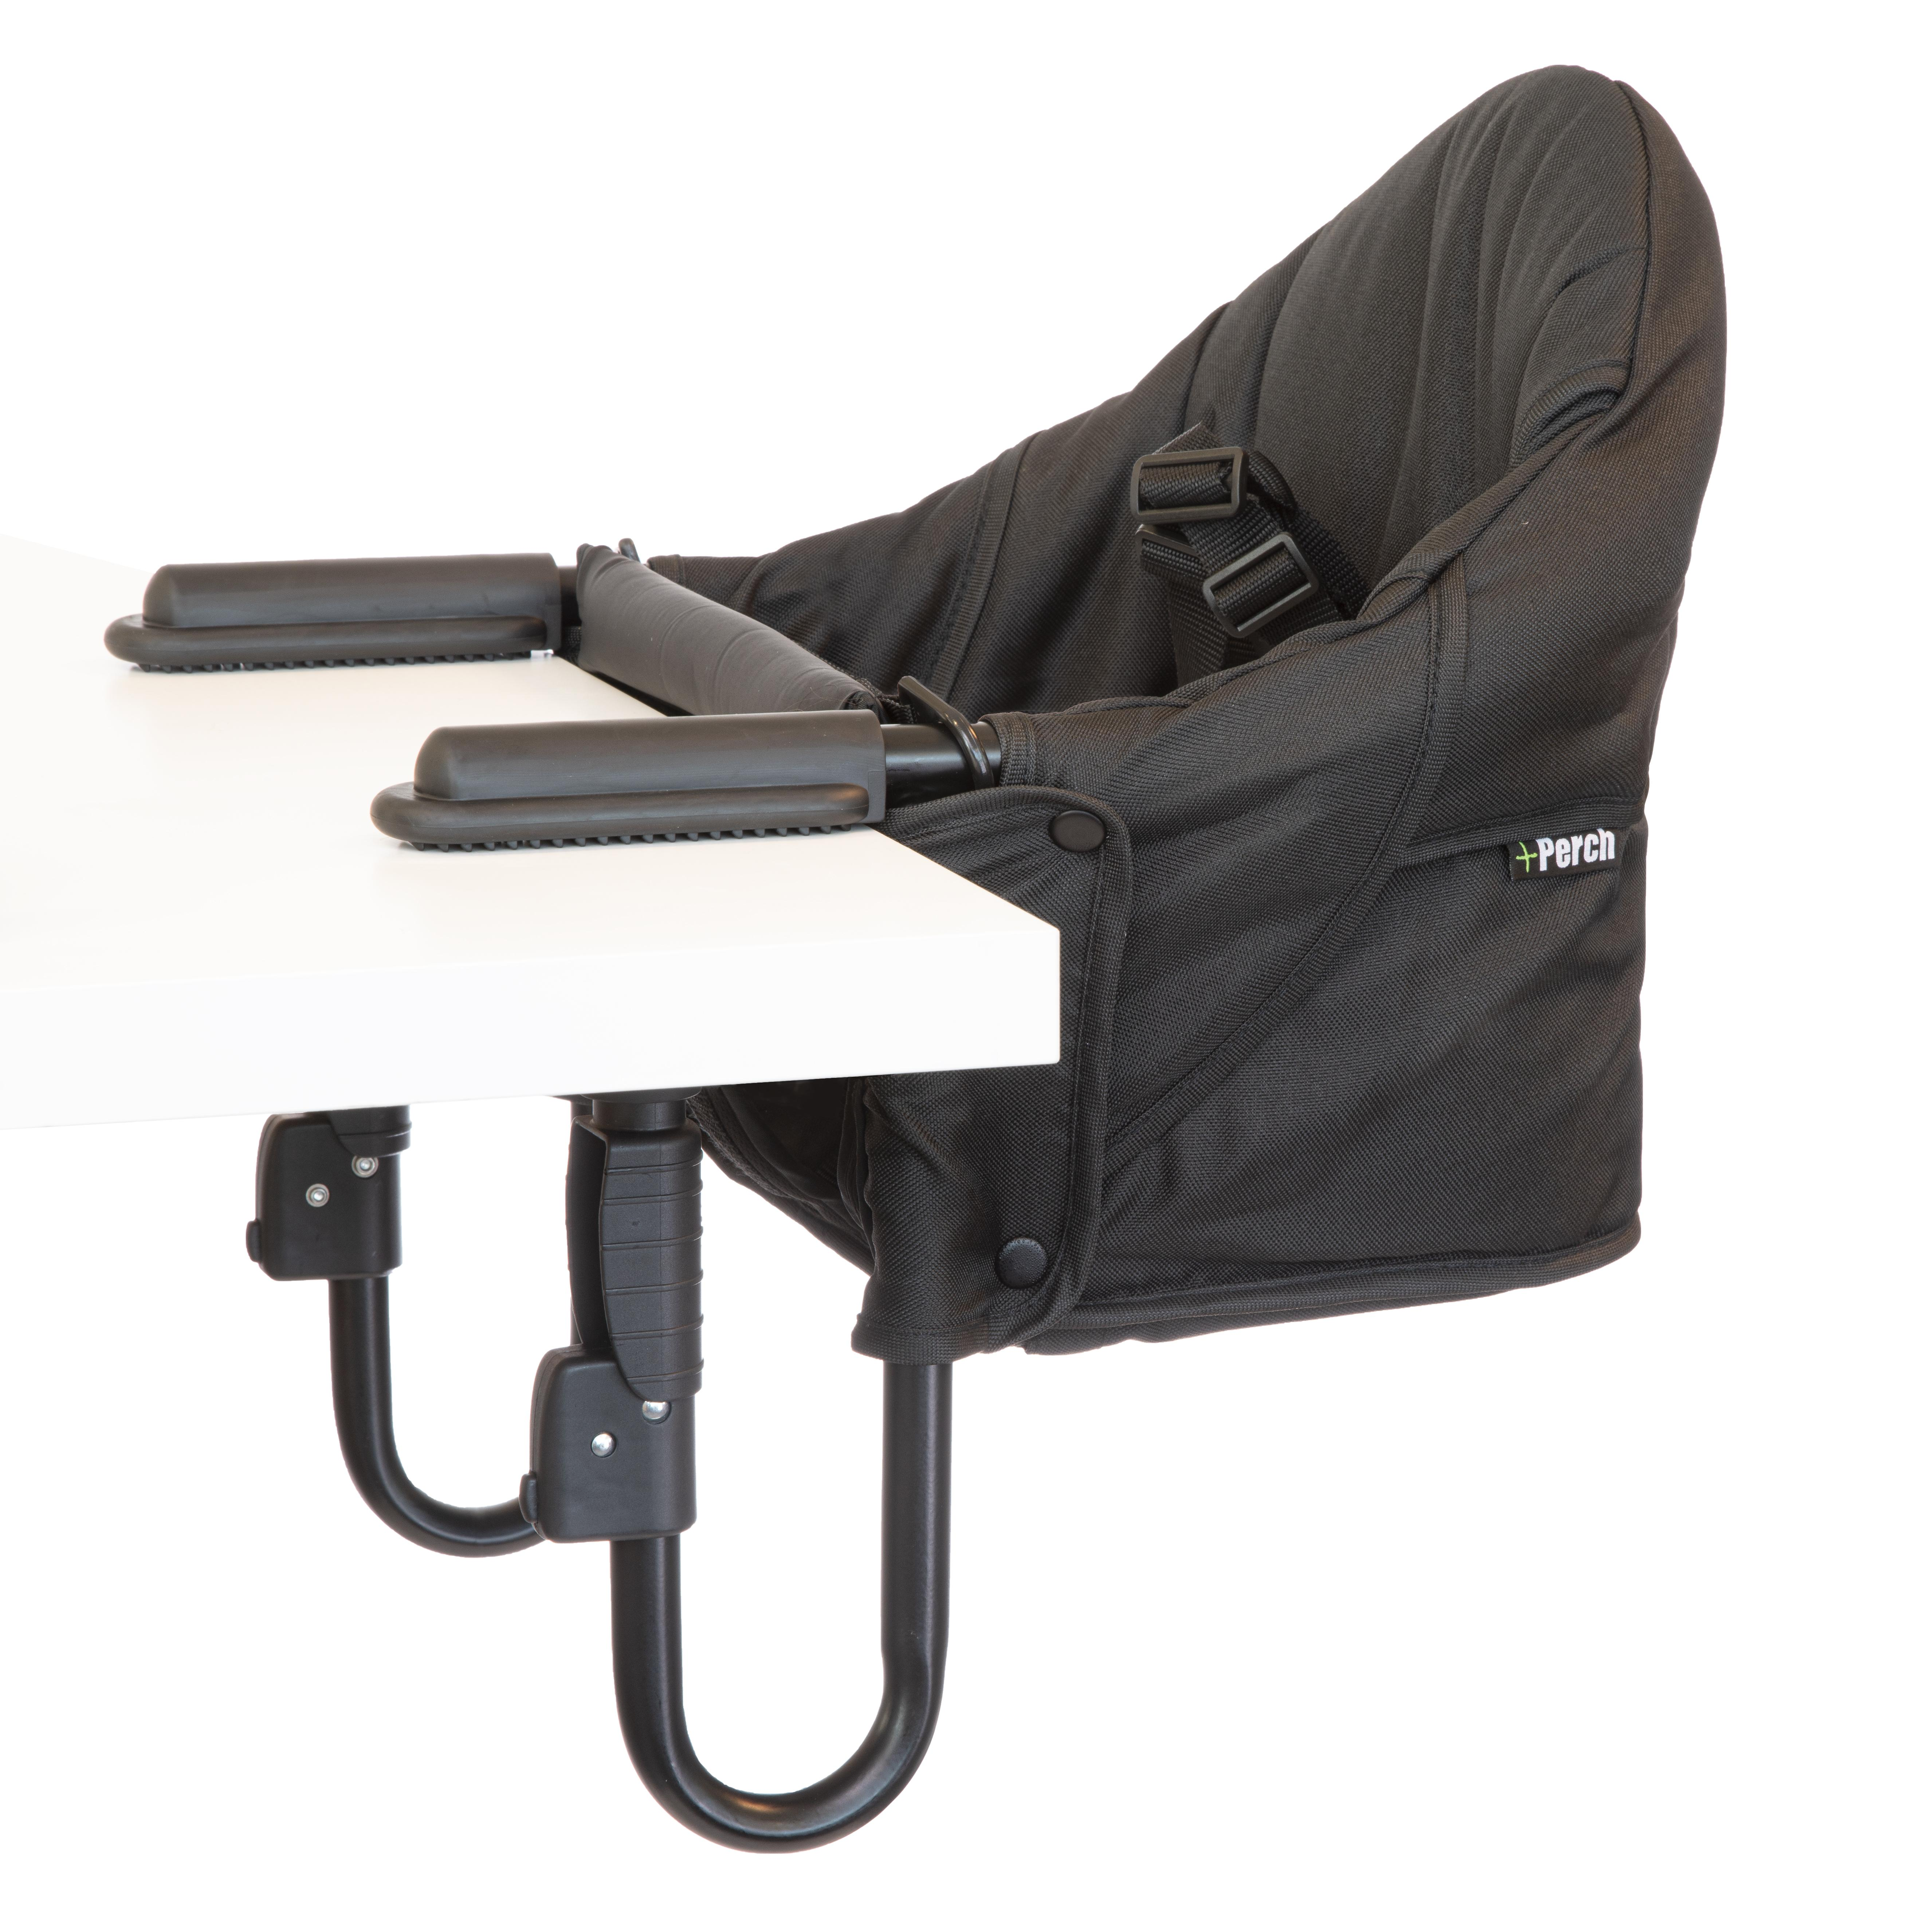 Perch Table Hook on Chair - Black